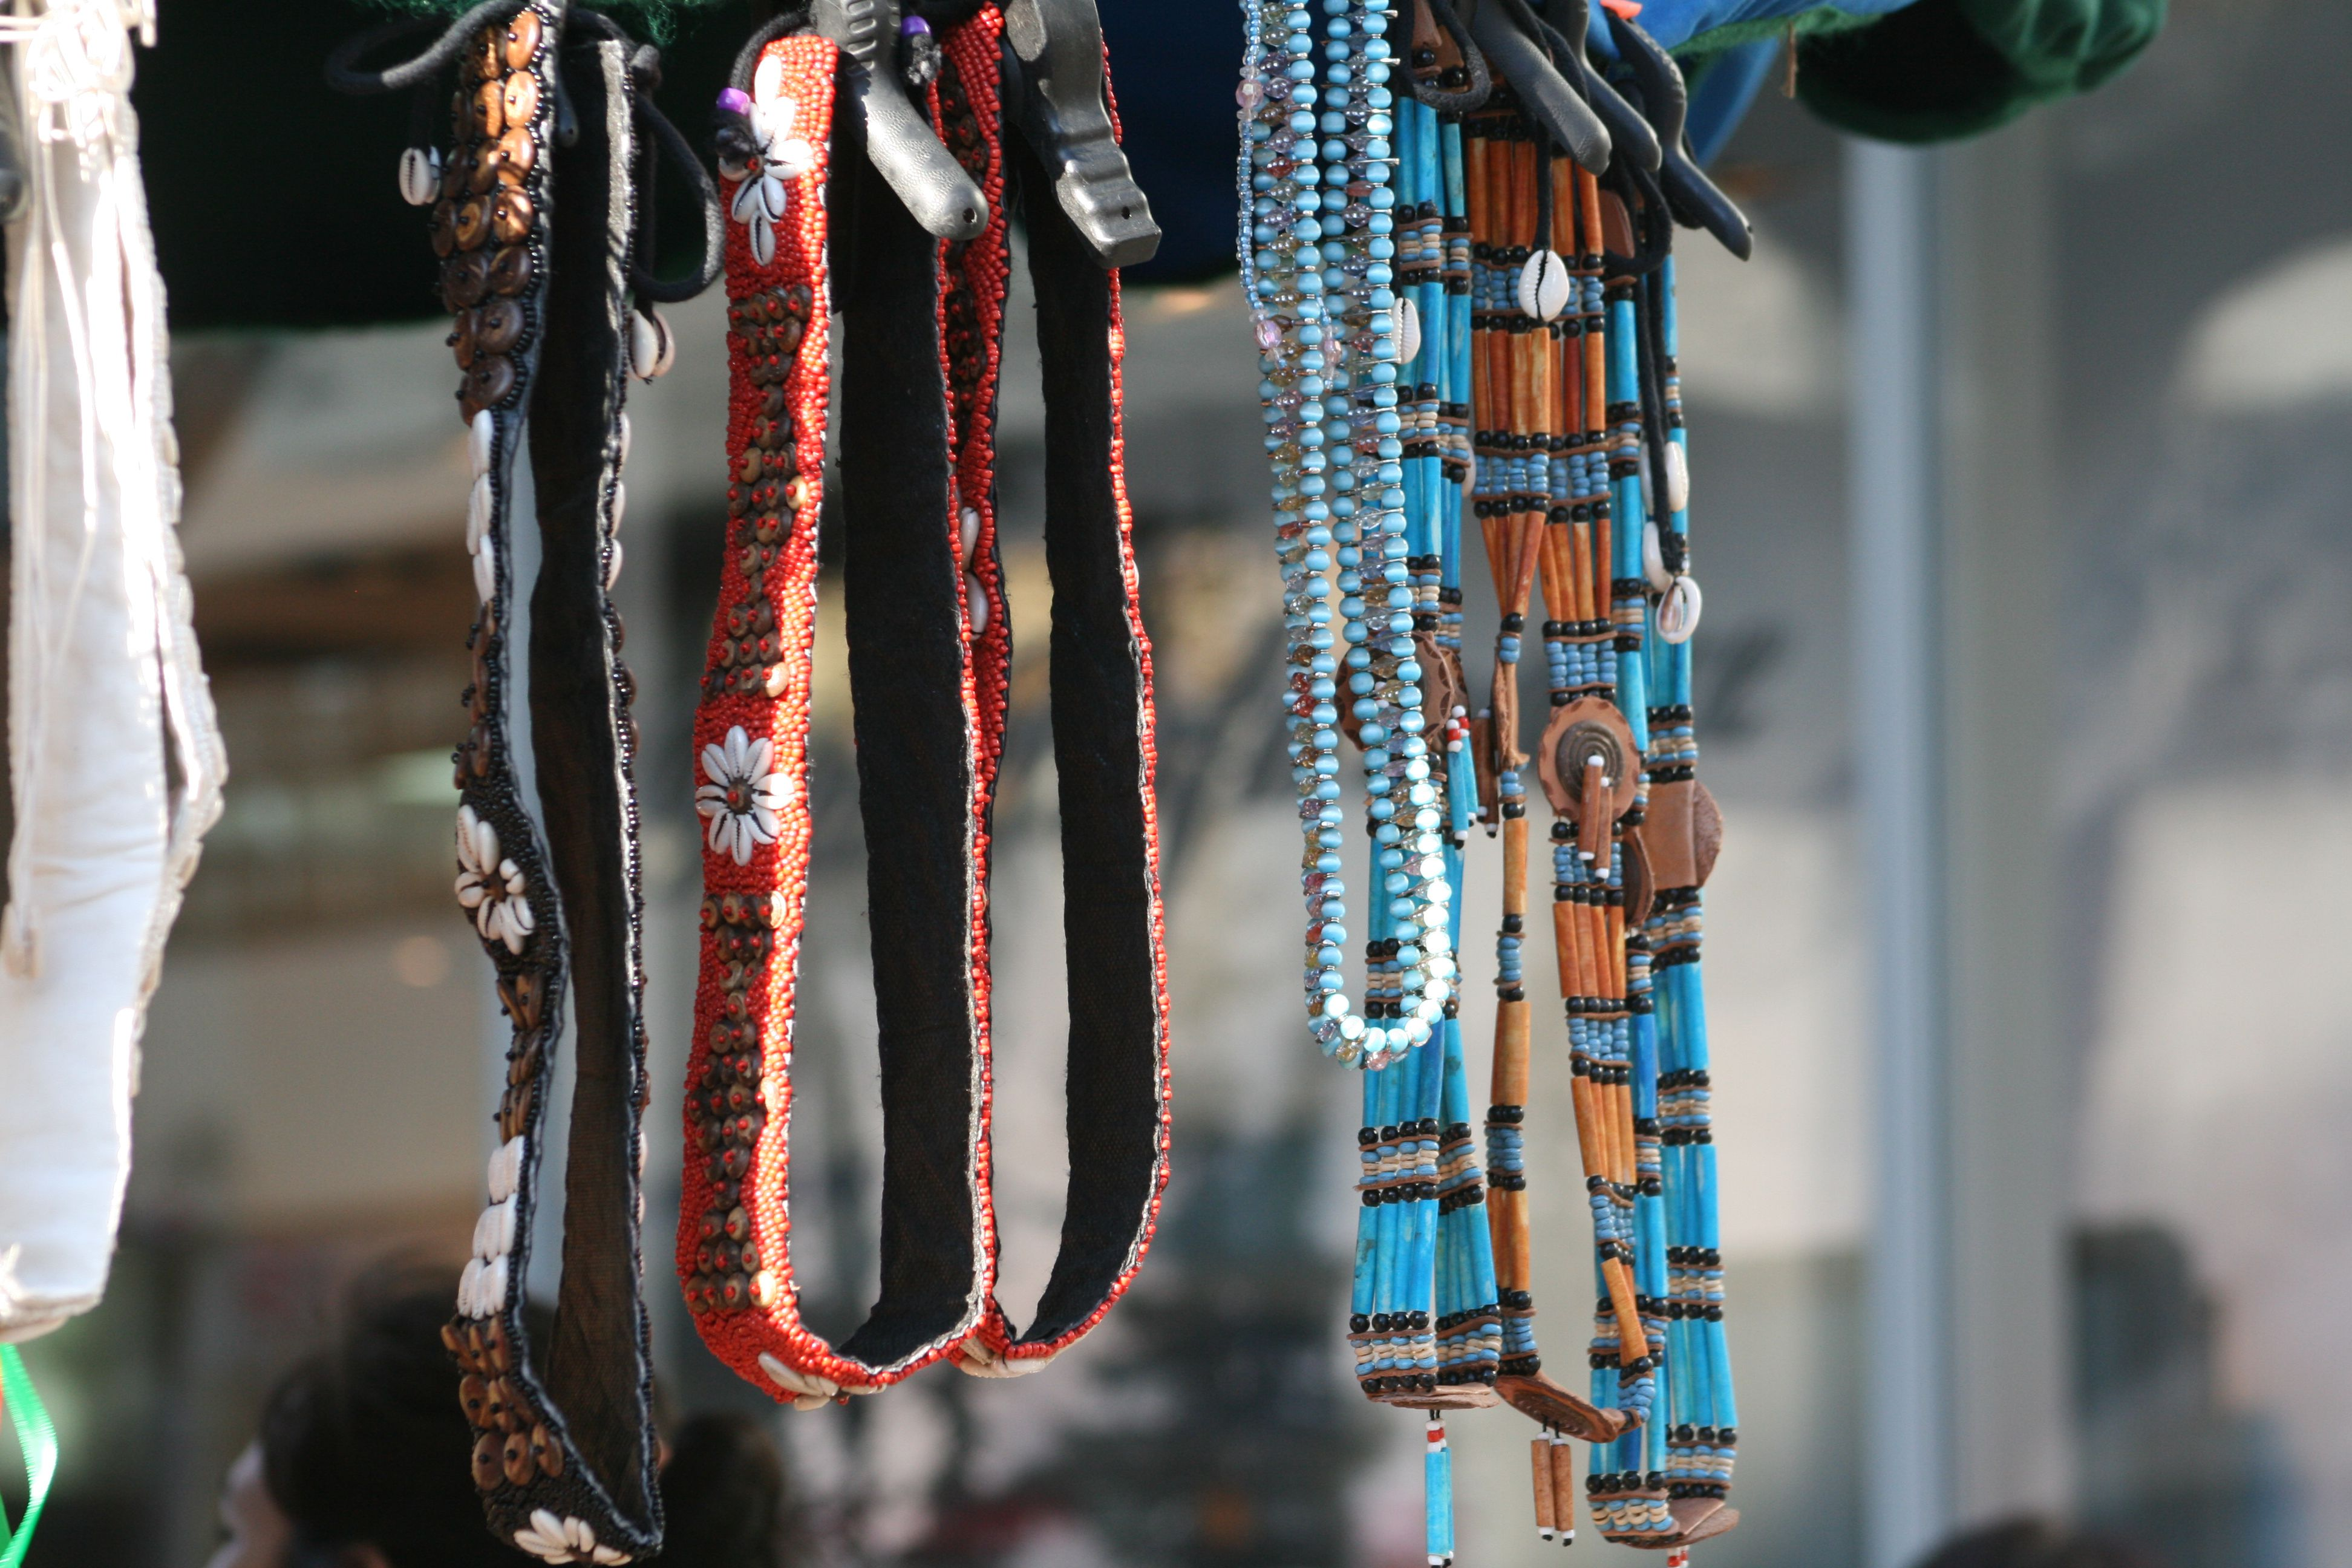 Necklaces made by BC First Nations